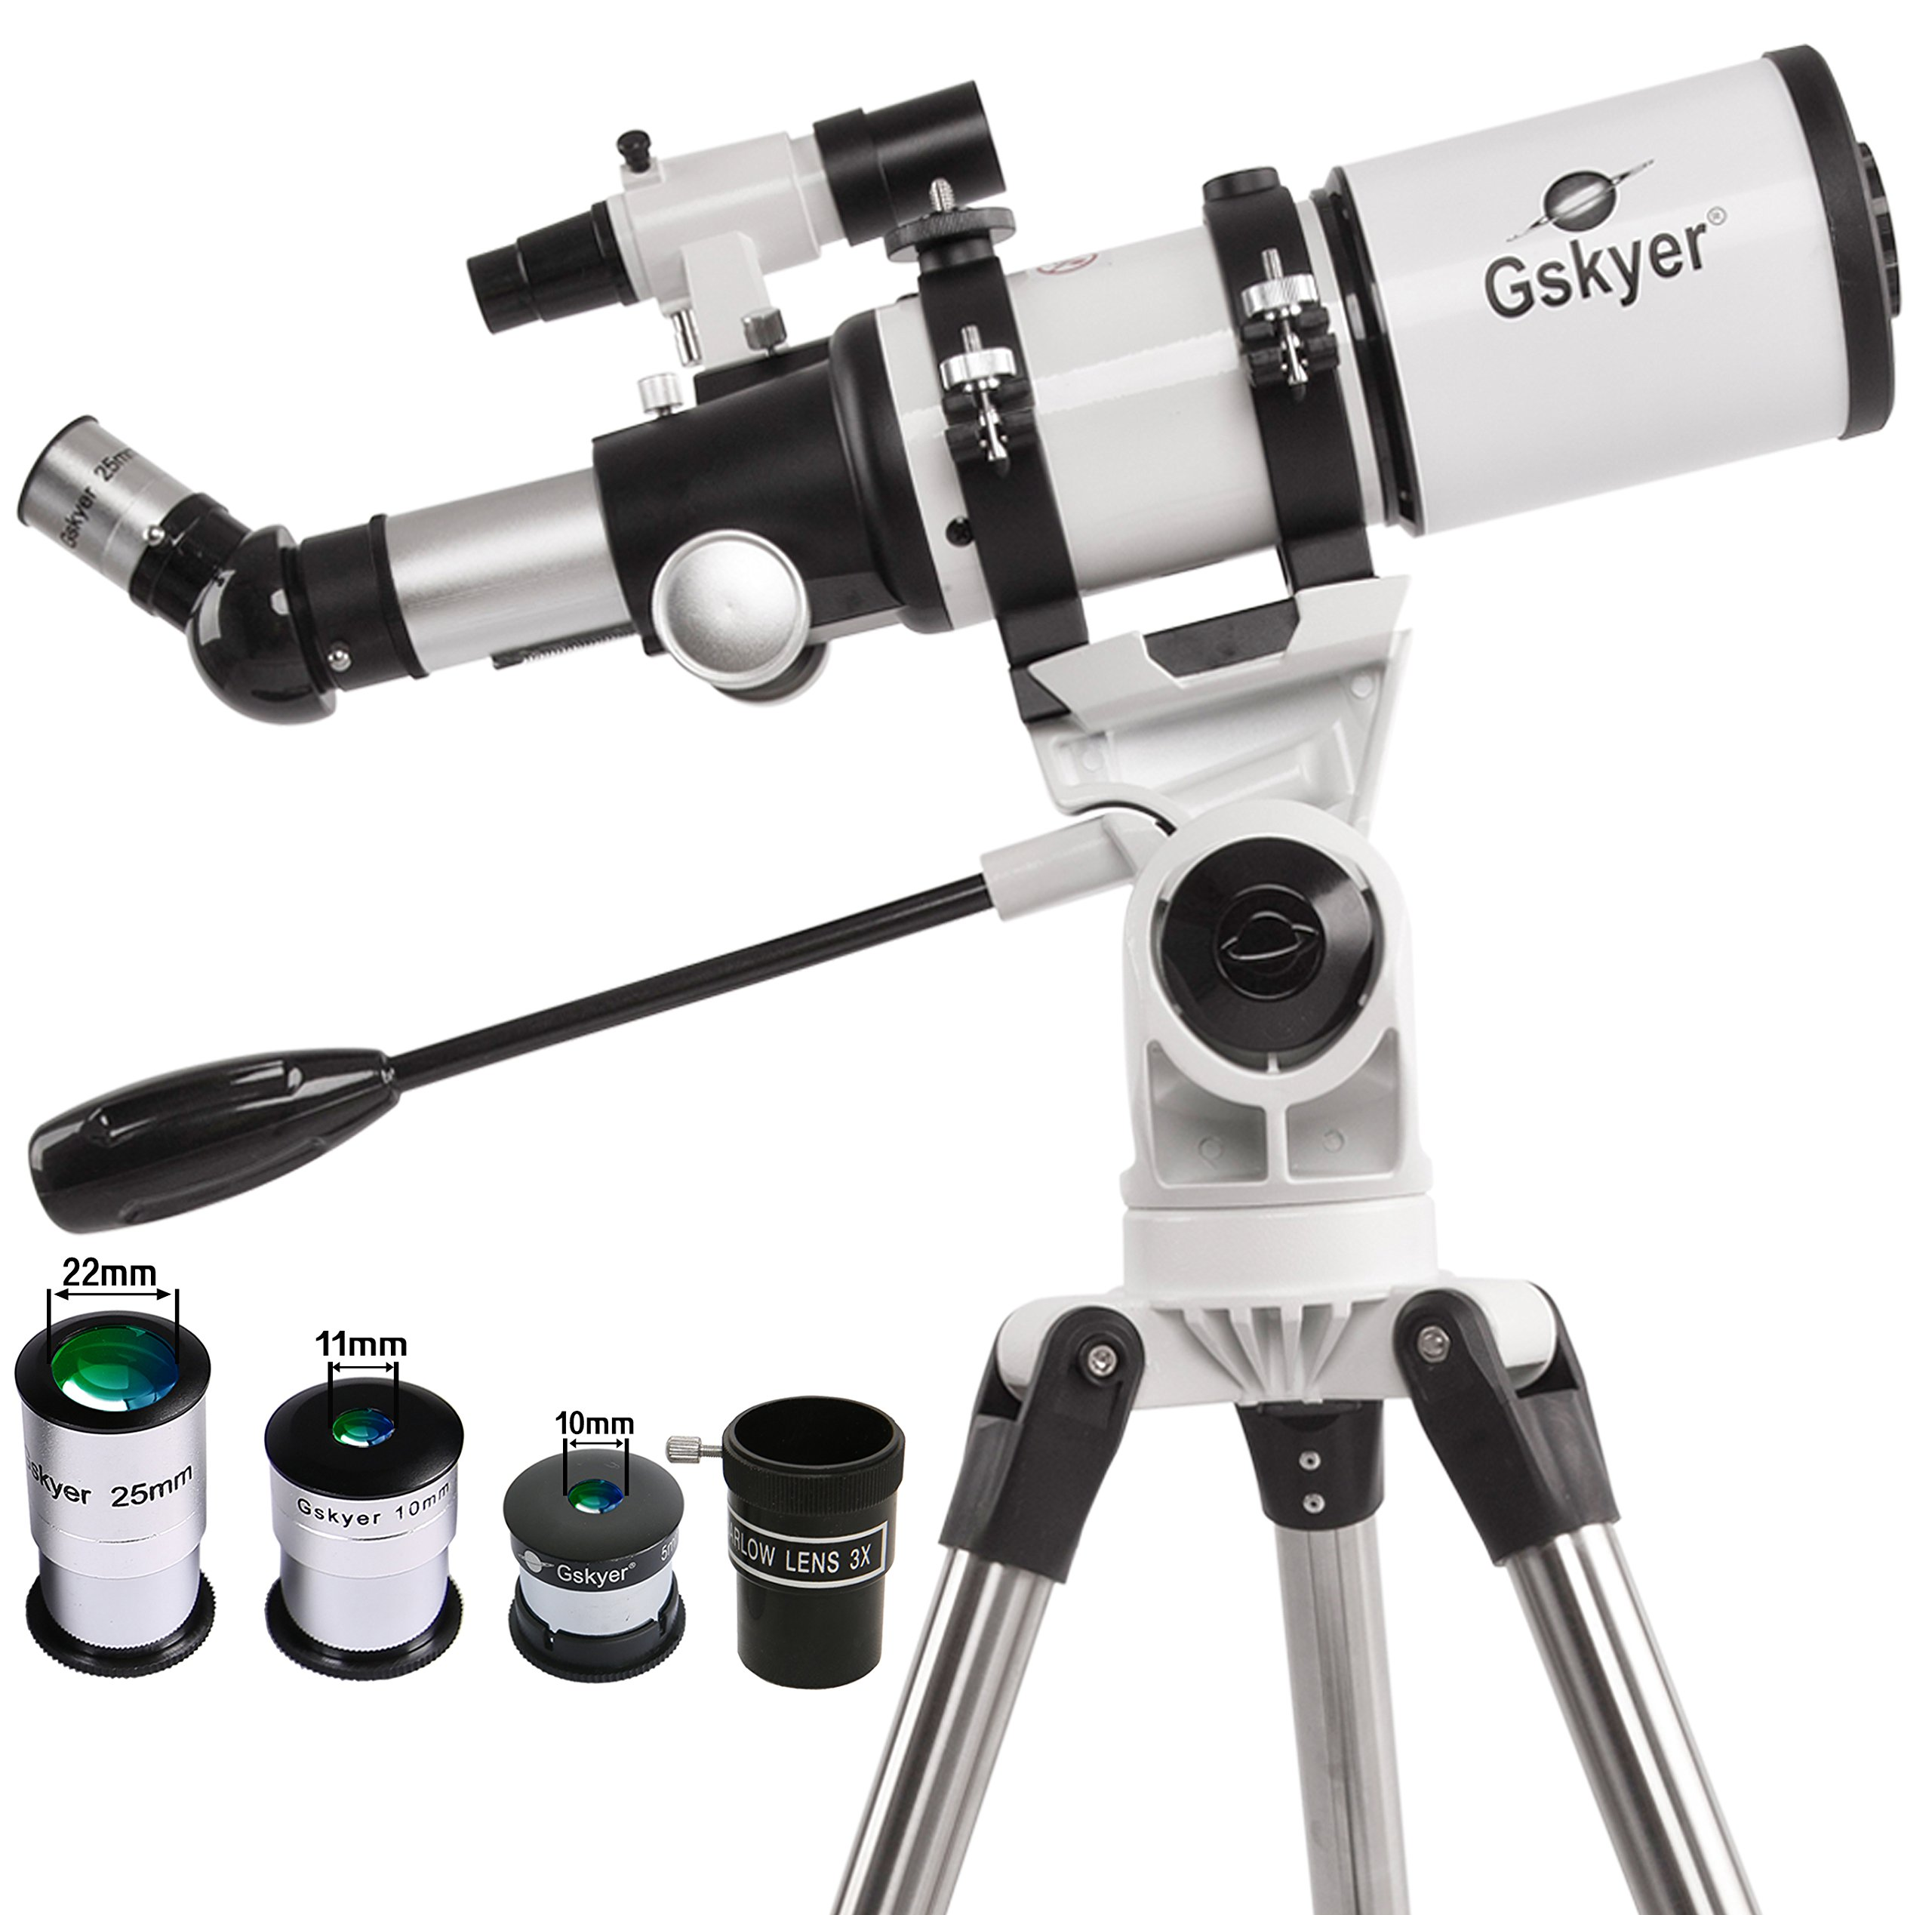 Gskyer Space Astronomical Refractor Telescope 400X80Mm Dual-Speed Slow Motion 18